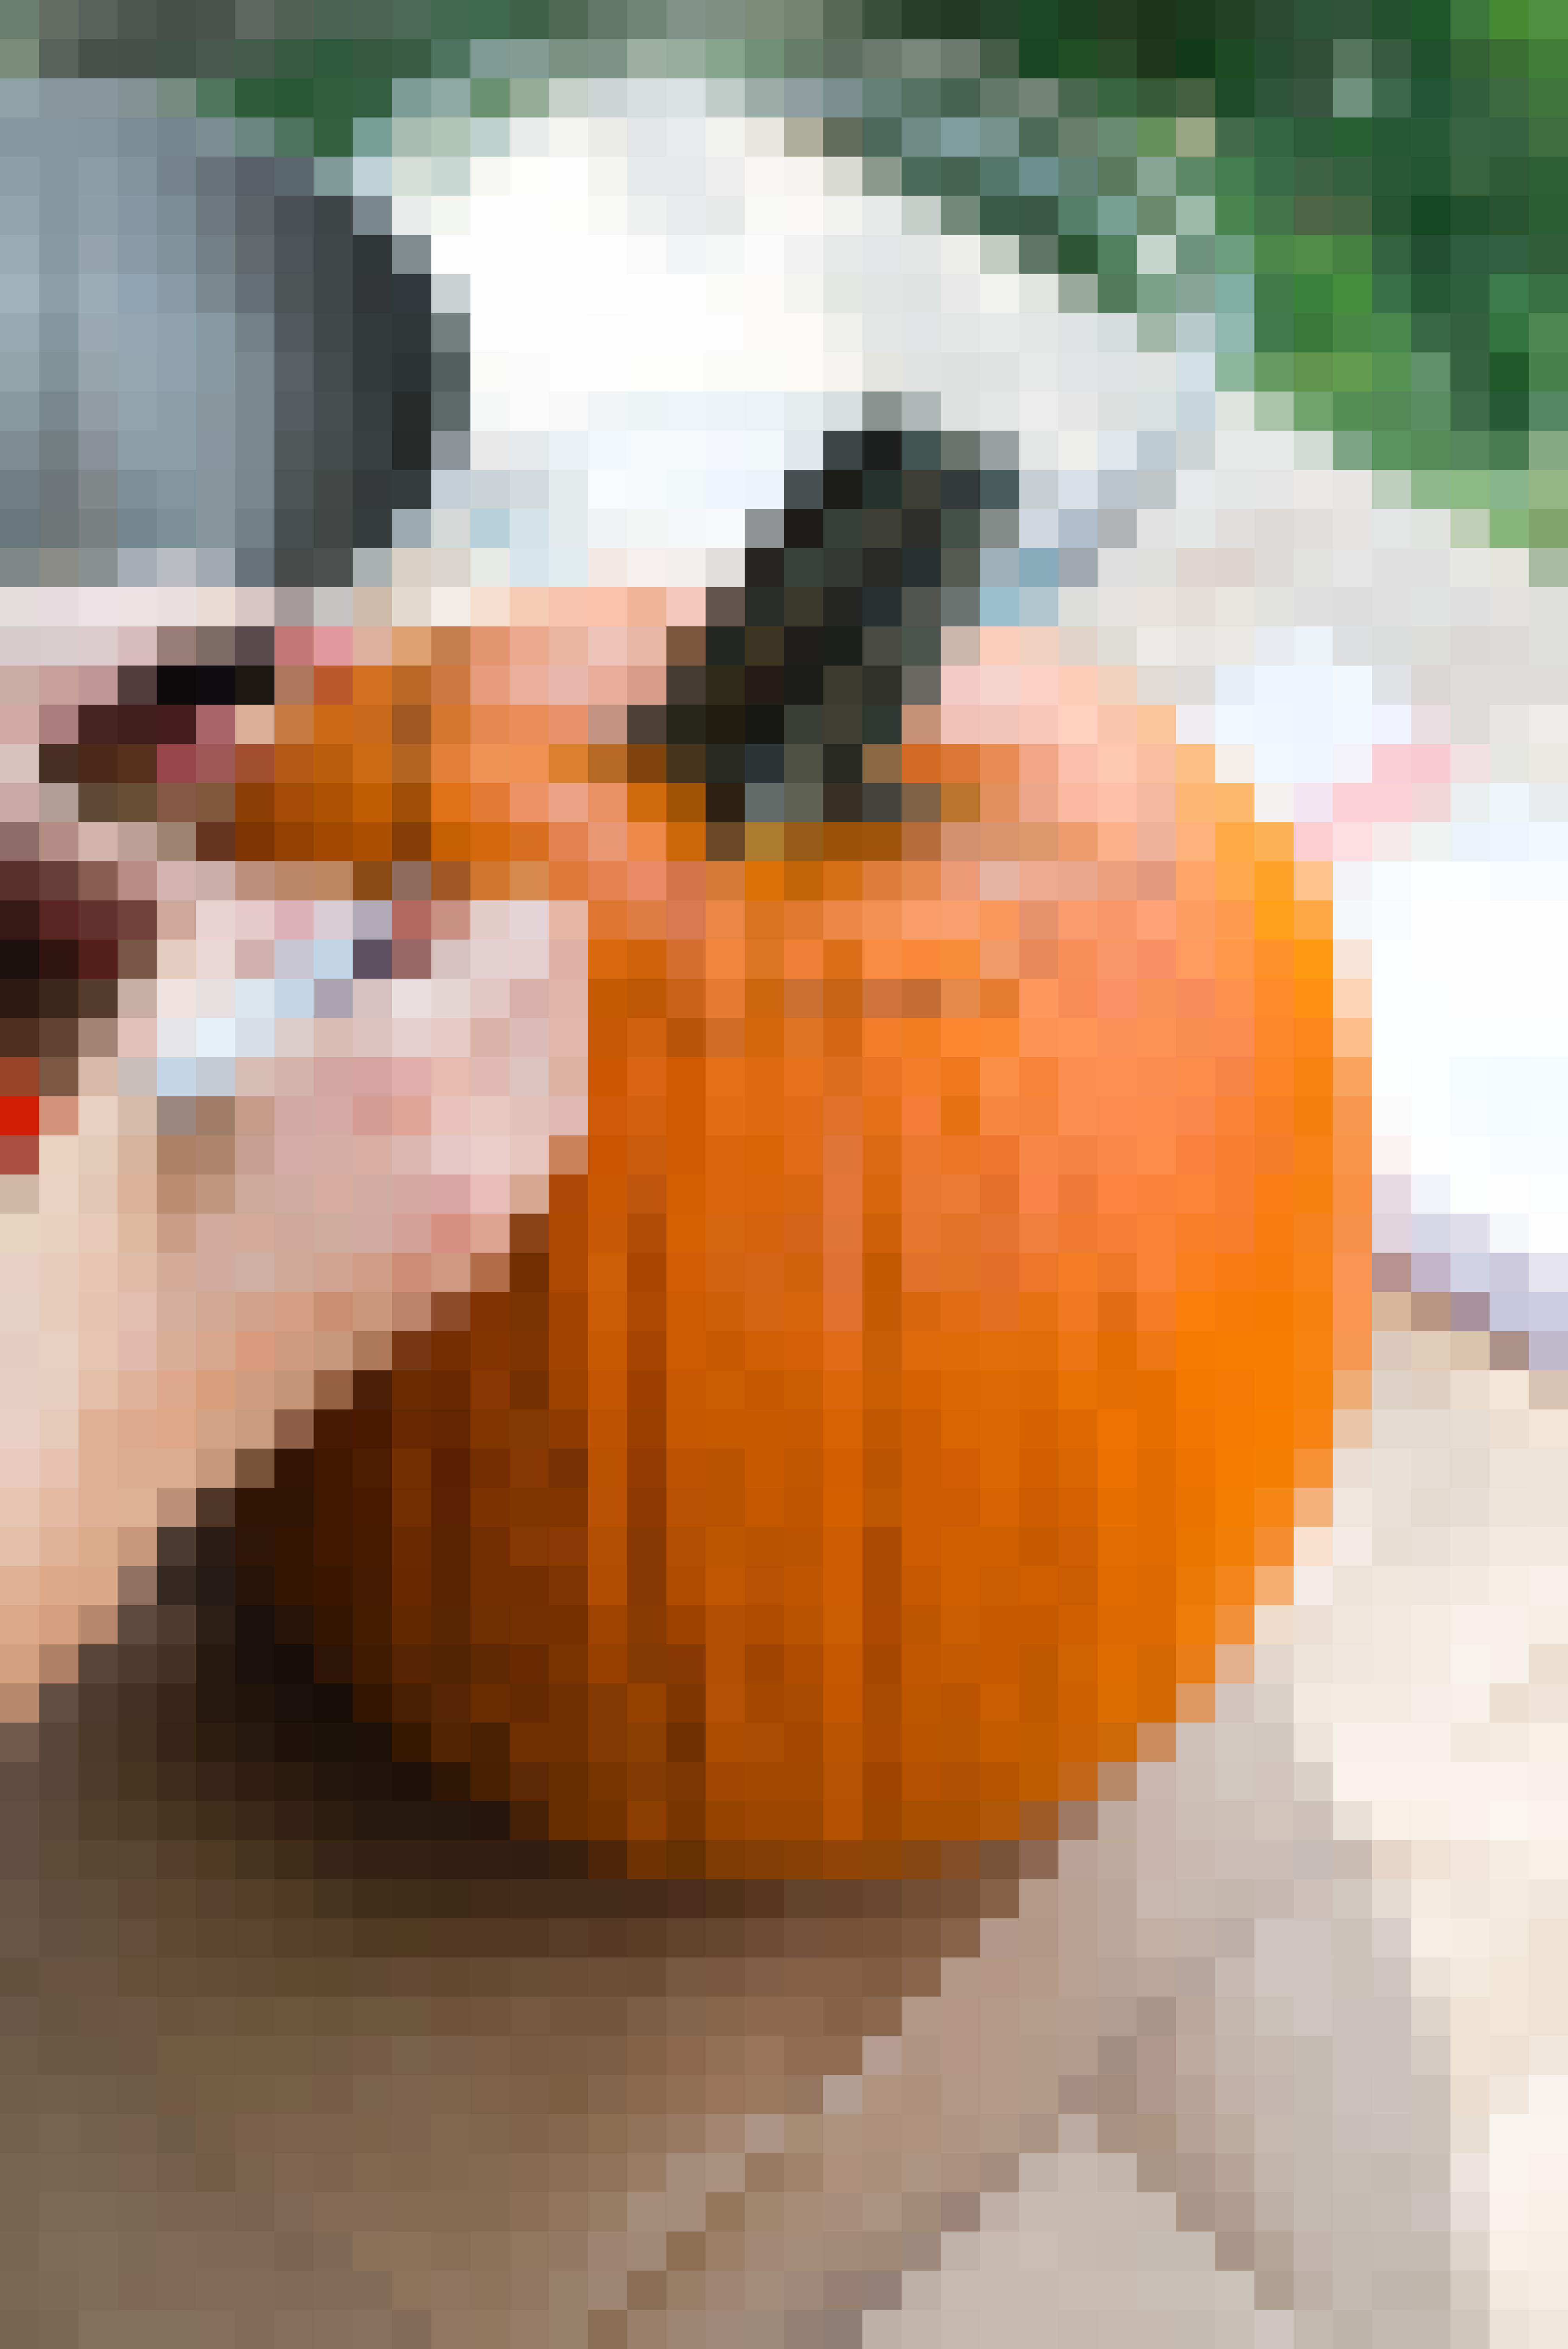 How To Carve a Pumpkin for Halloween: The Easiest, Most Foolproof Method: gallery image 3